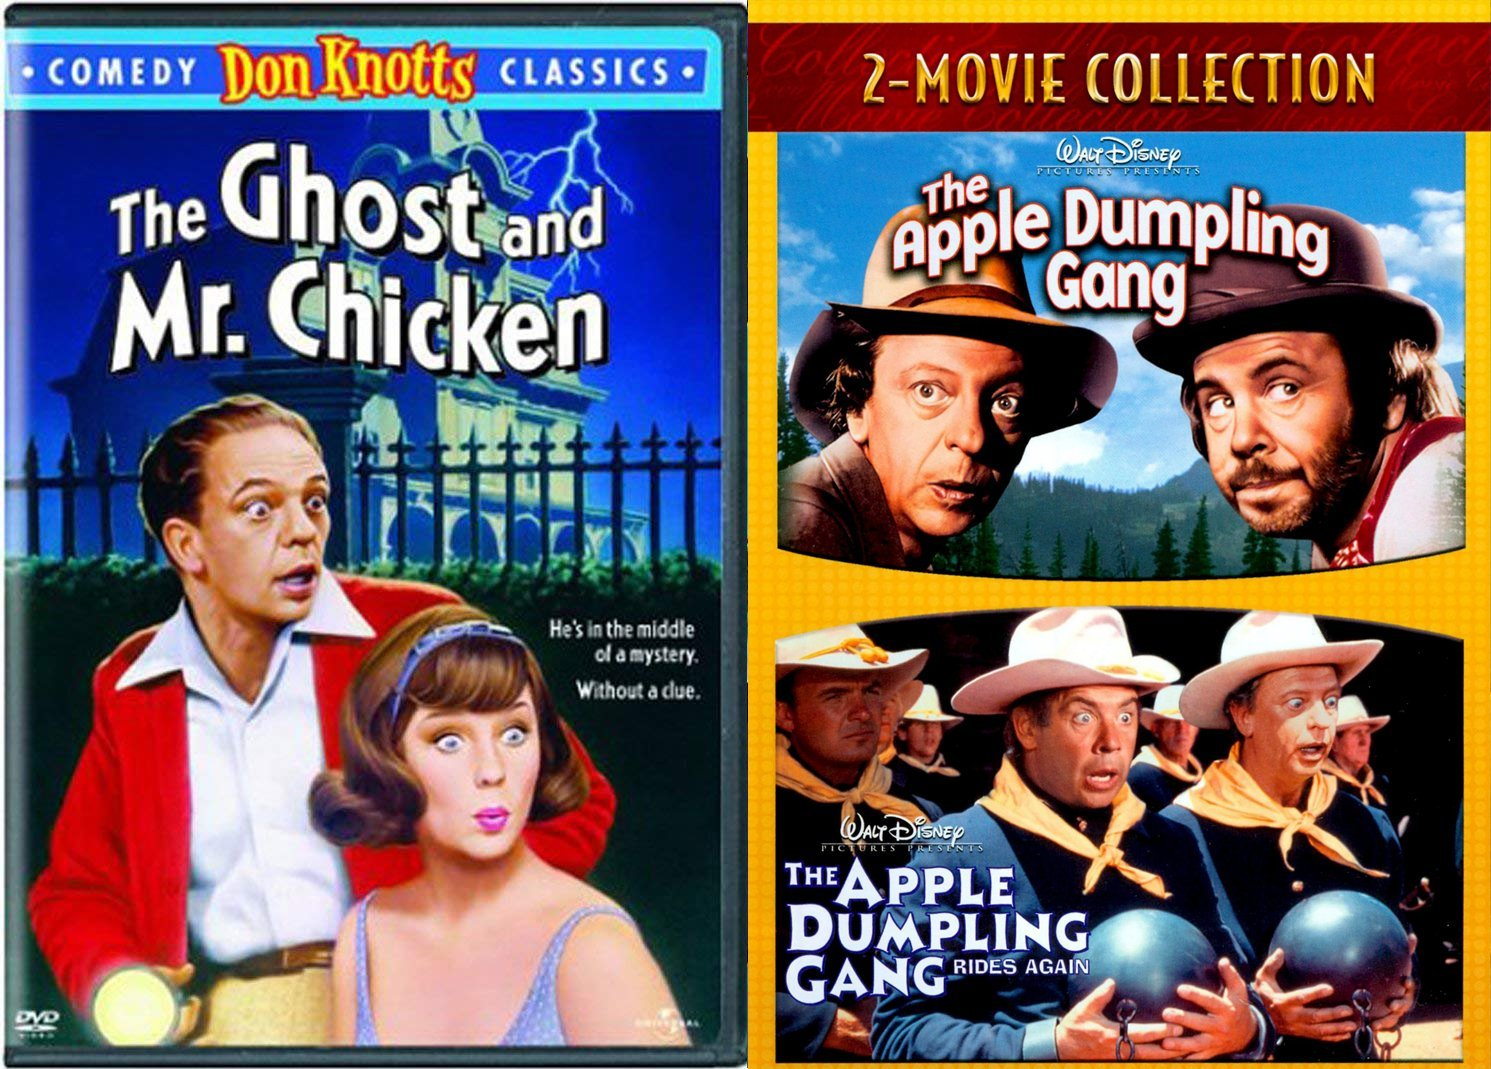 Trouble Afoot Don Knotts Tim Conway Comedy Gang Movie Pack Apple Dumpling Rides Again Double Feature + The Ghost and Mr. Chicken